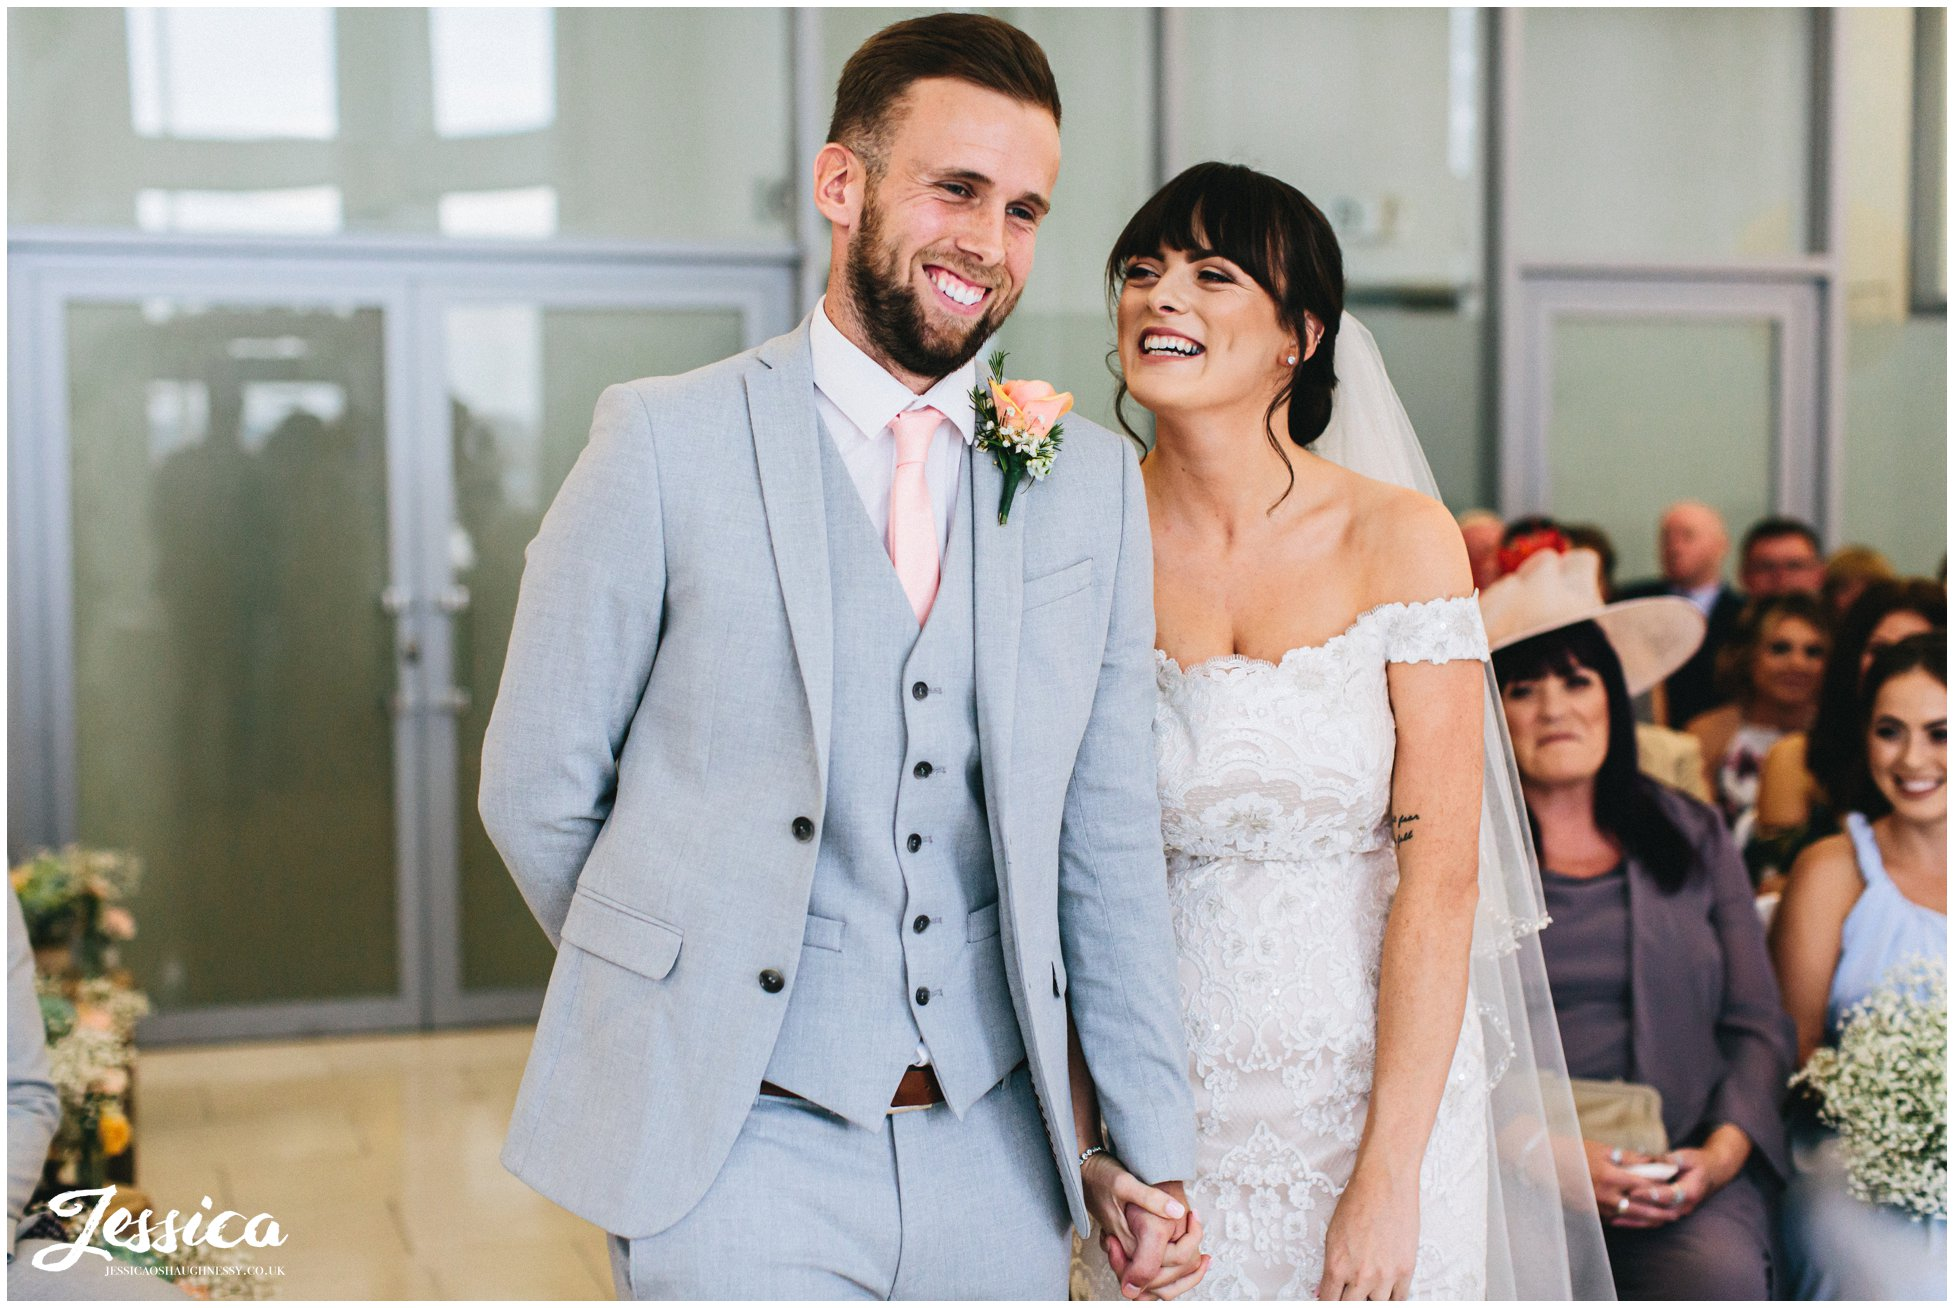 the couple laugh together during their liverpool wedding